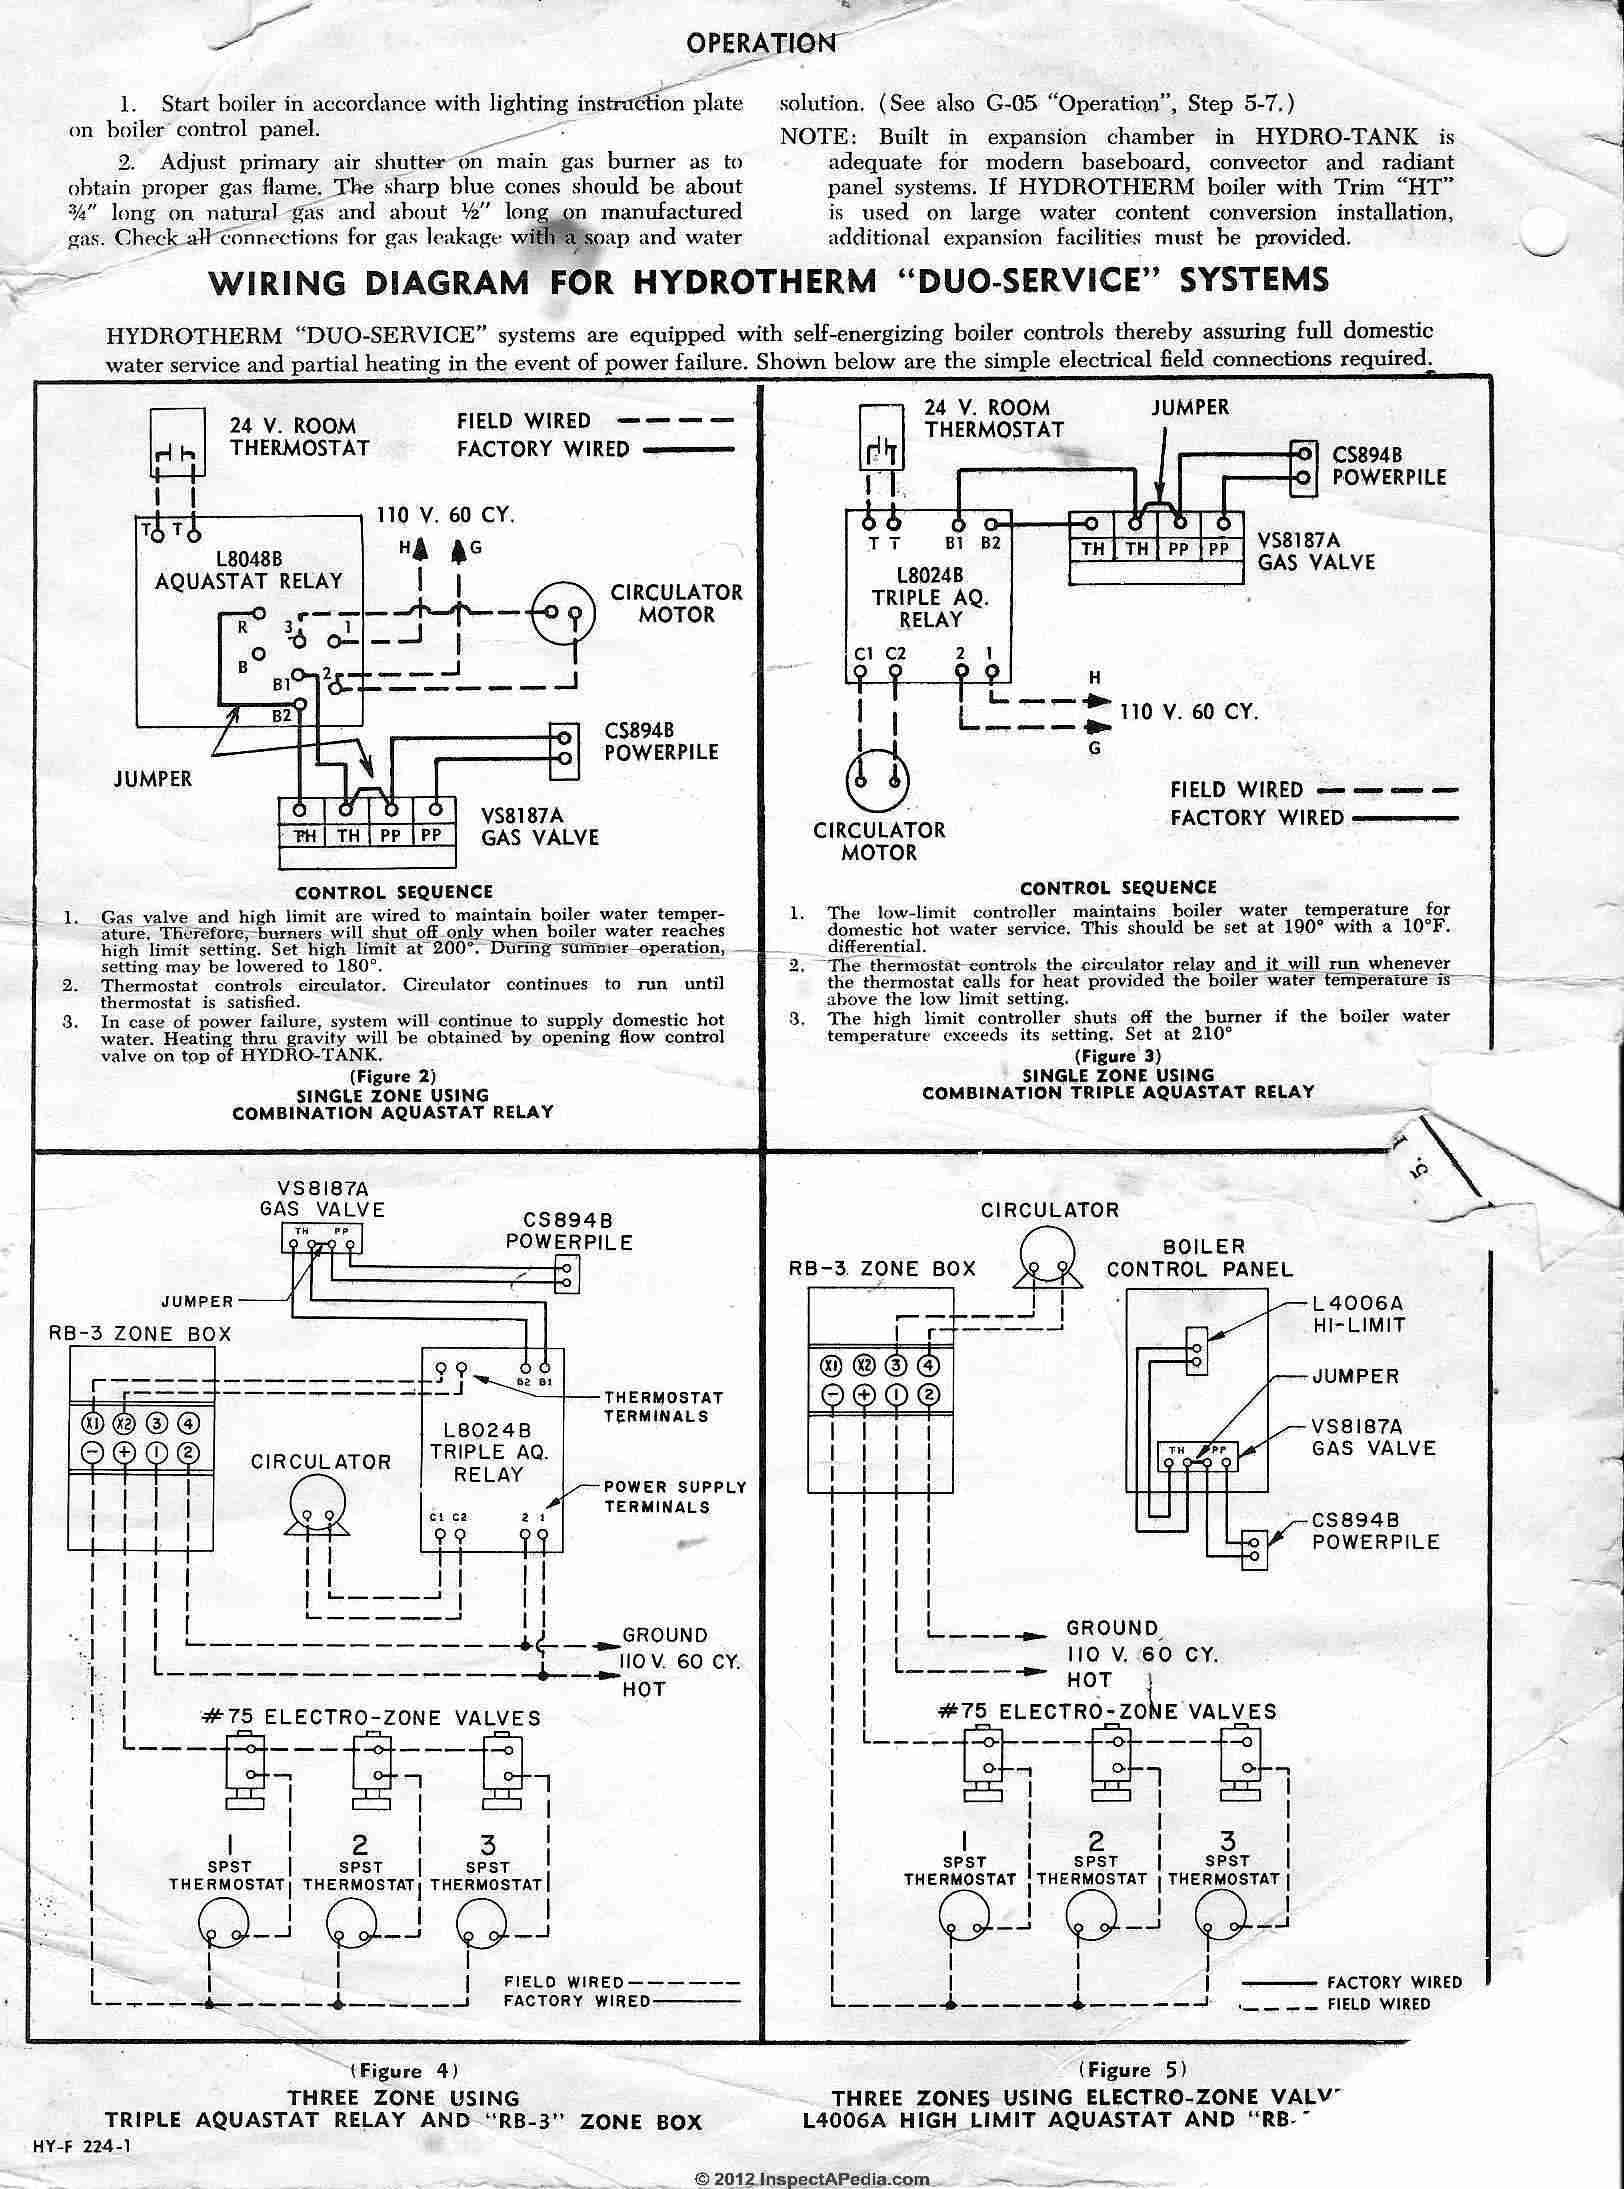 L8024B_Aquastat_0422_DJFcs heating boiler aquastat control diagnosis, troubleshooting, repair imit boiler thermostat wiring diagram at bakdesigns.co